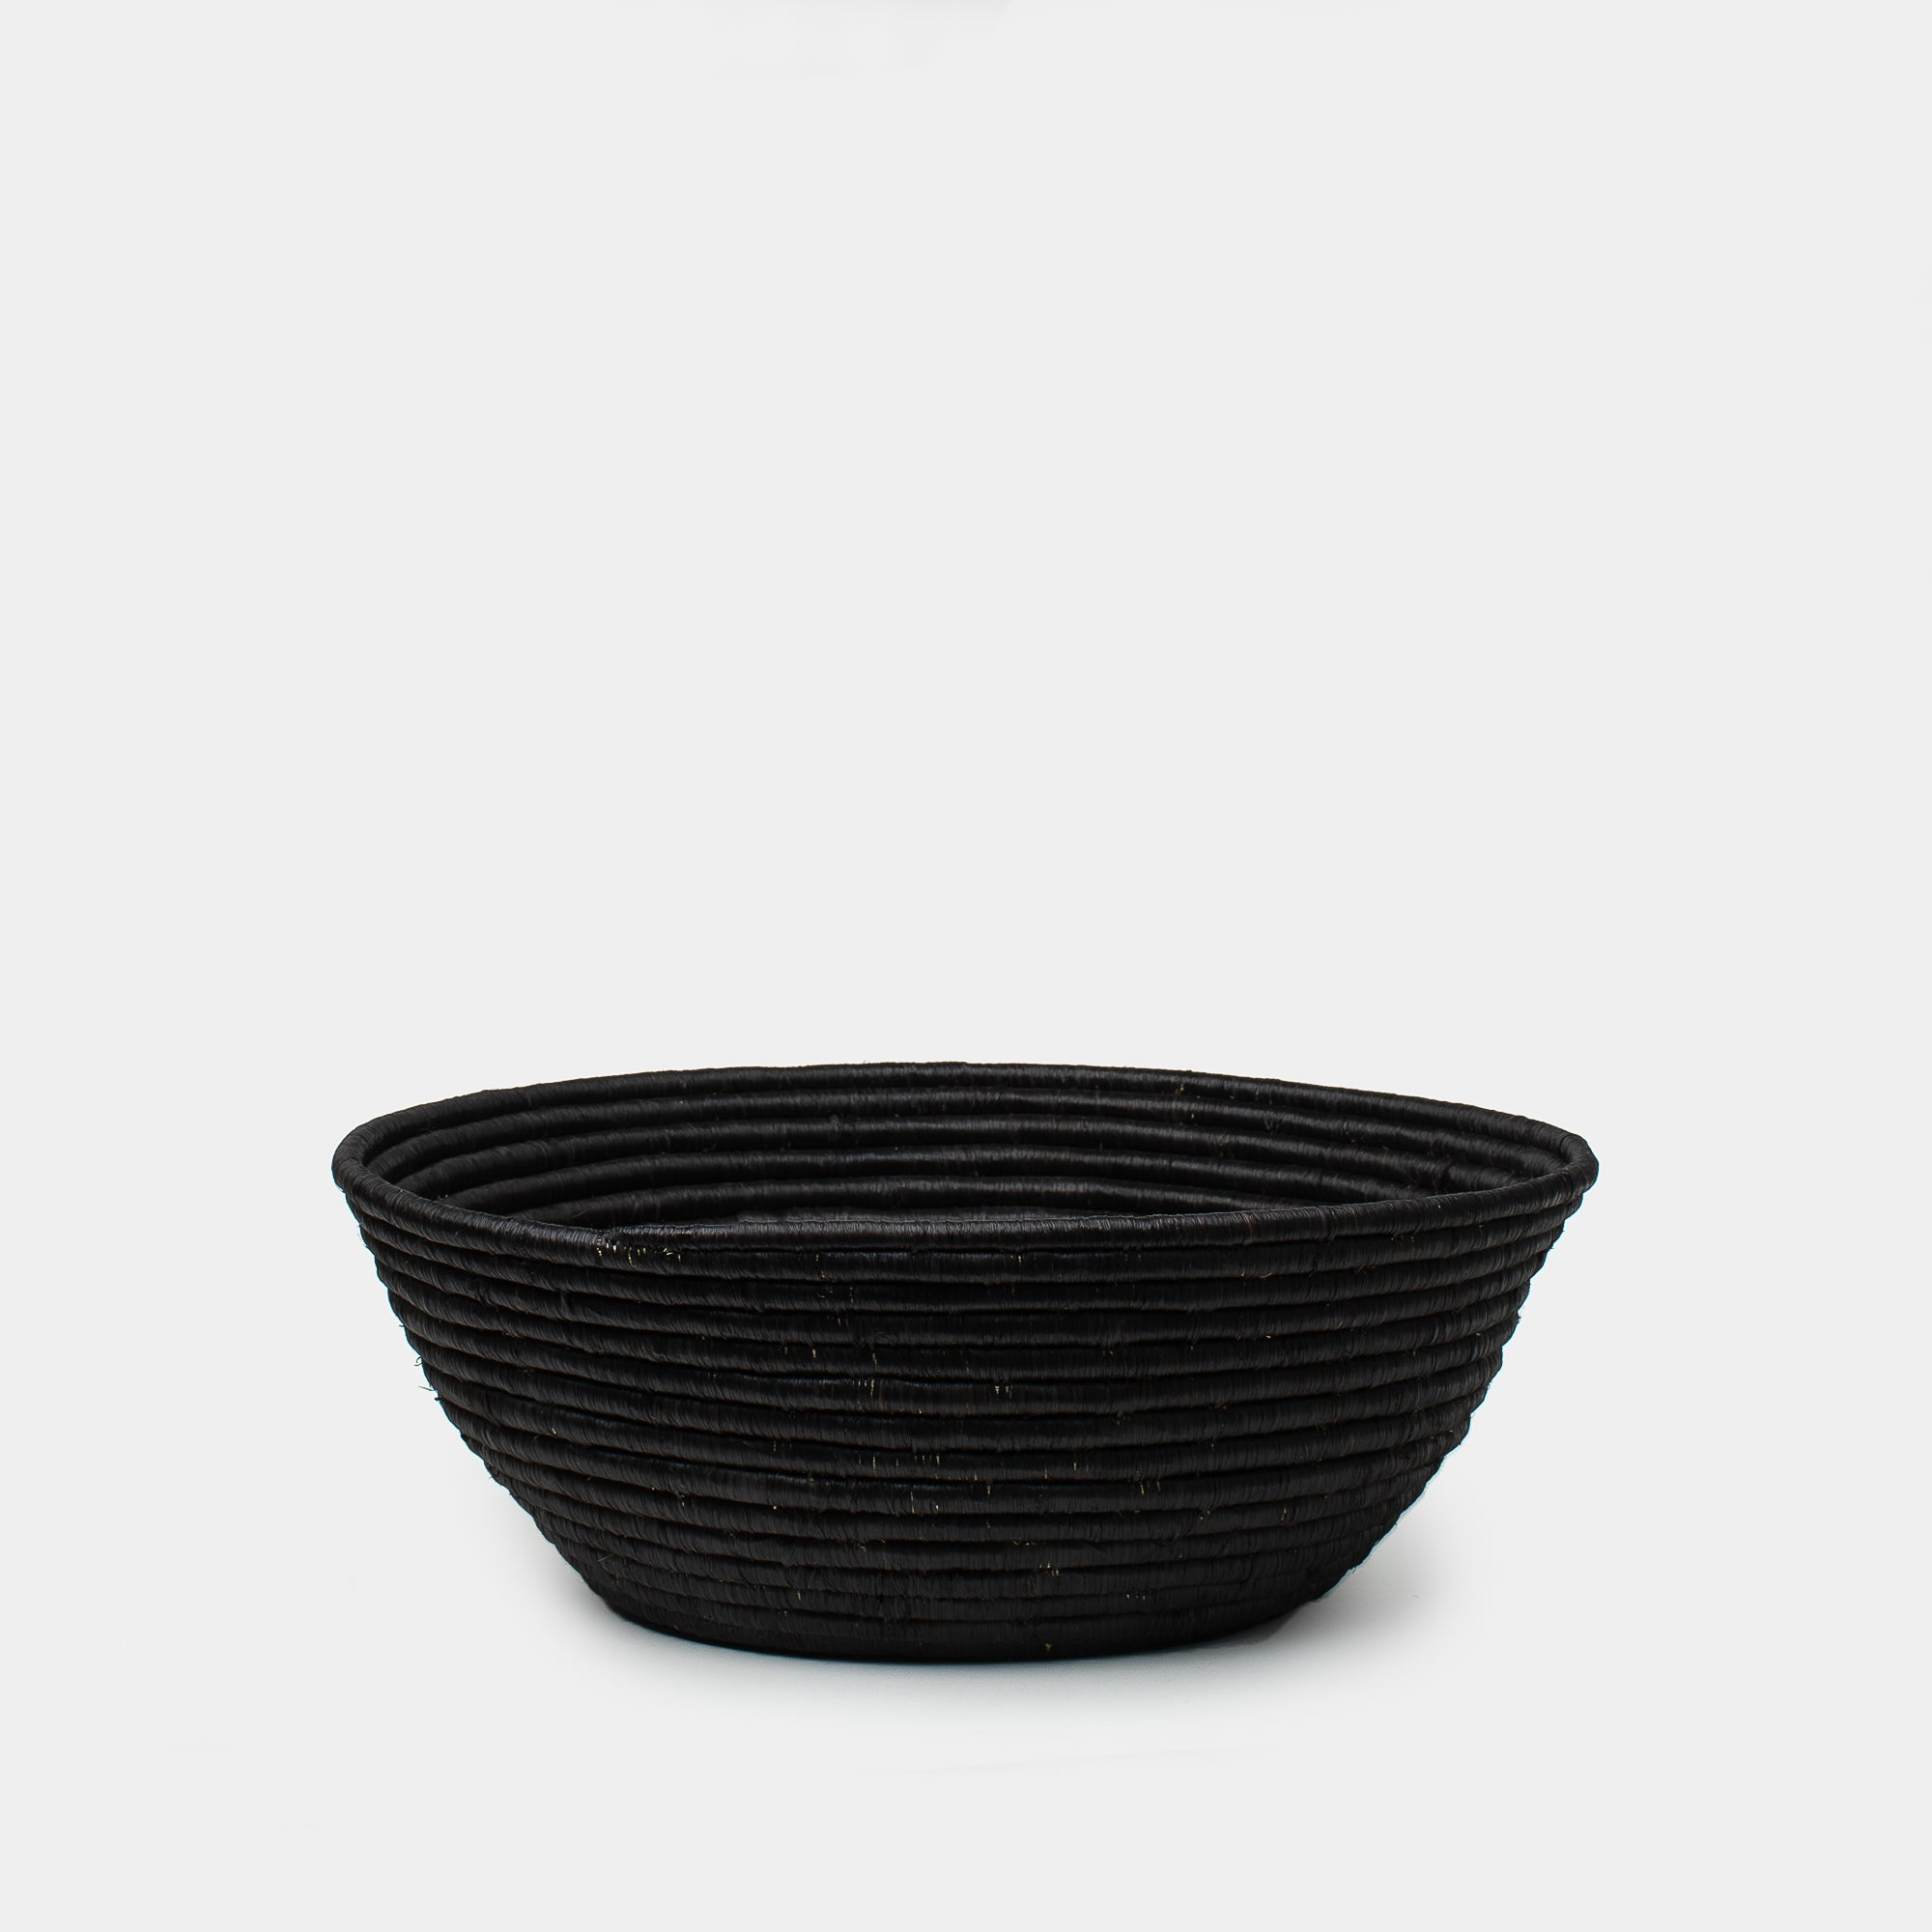 Raffia Basket in Black - Baskets – Shoppe Amber Interiors